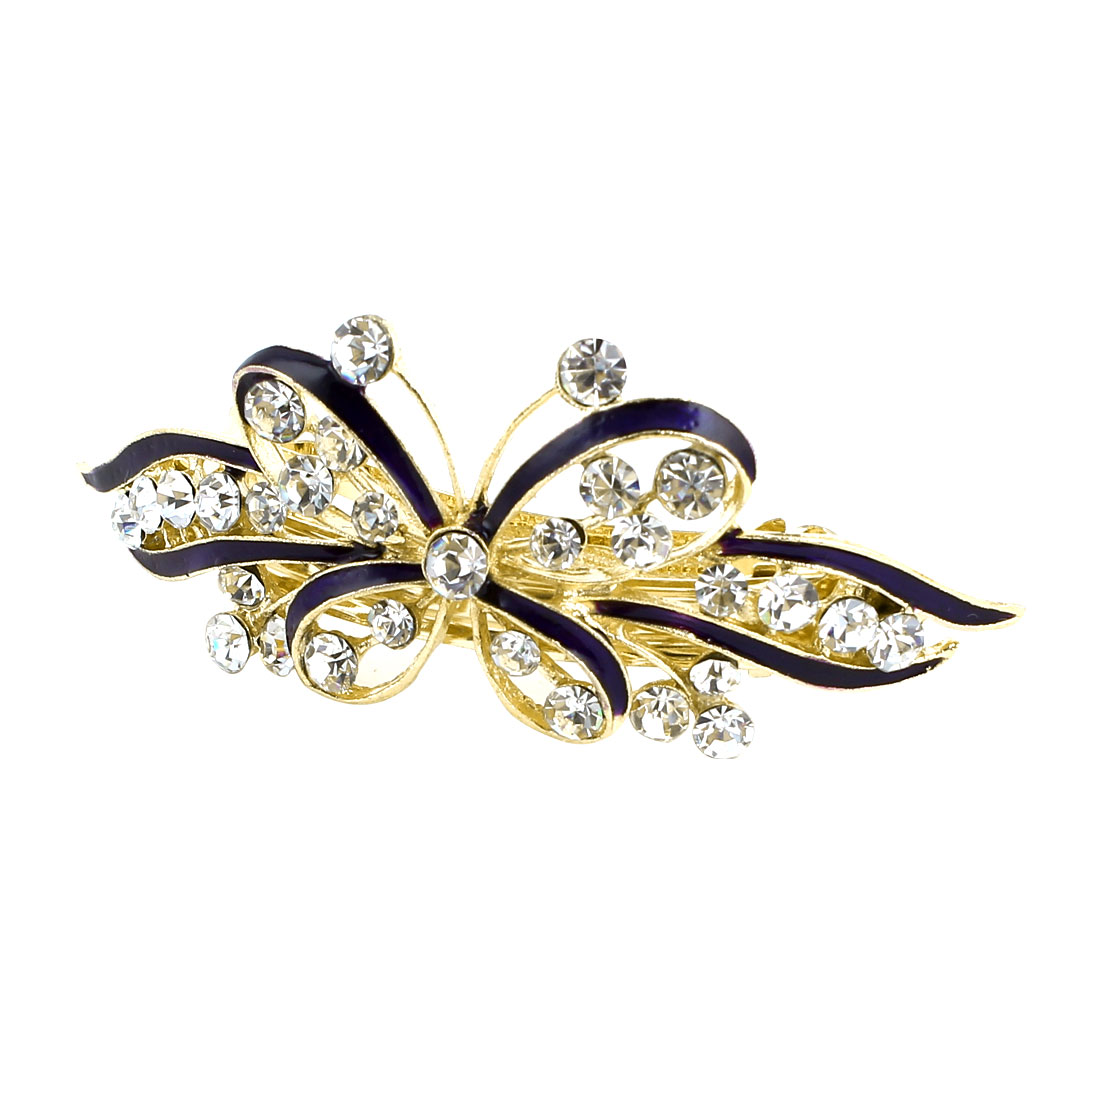 Women Bowknot Design Shiny Rhinestone Decor French Barrette Clip Hair Clamp